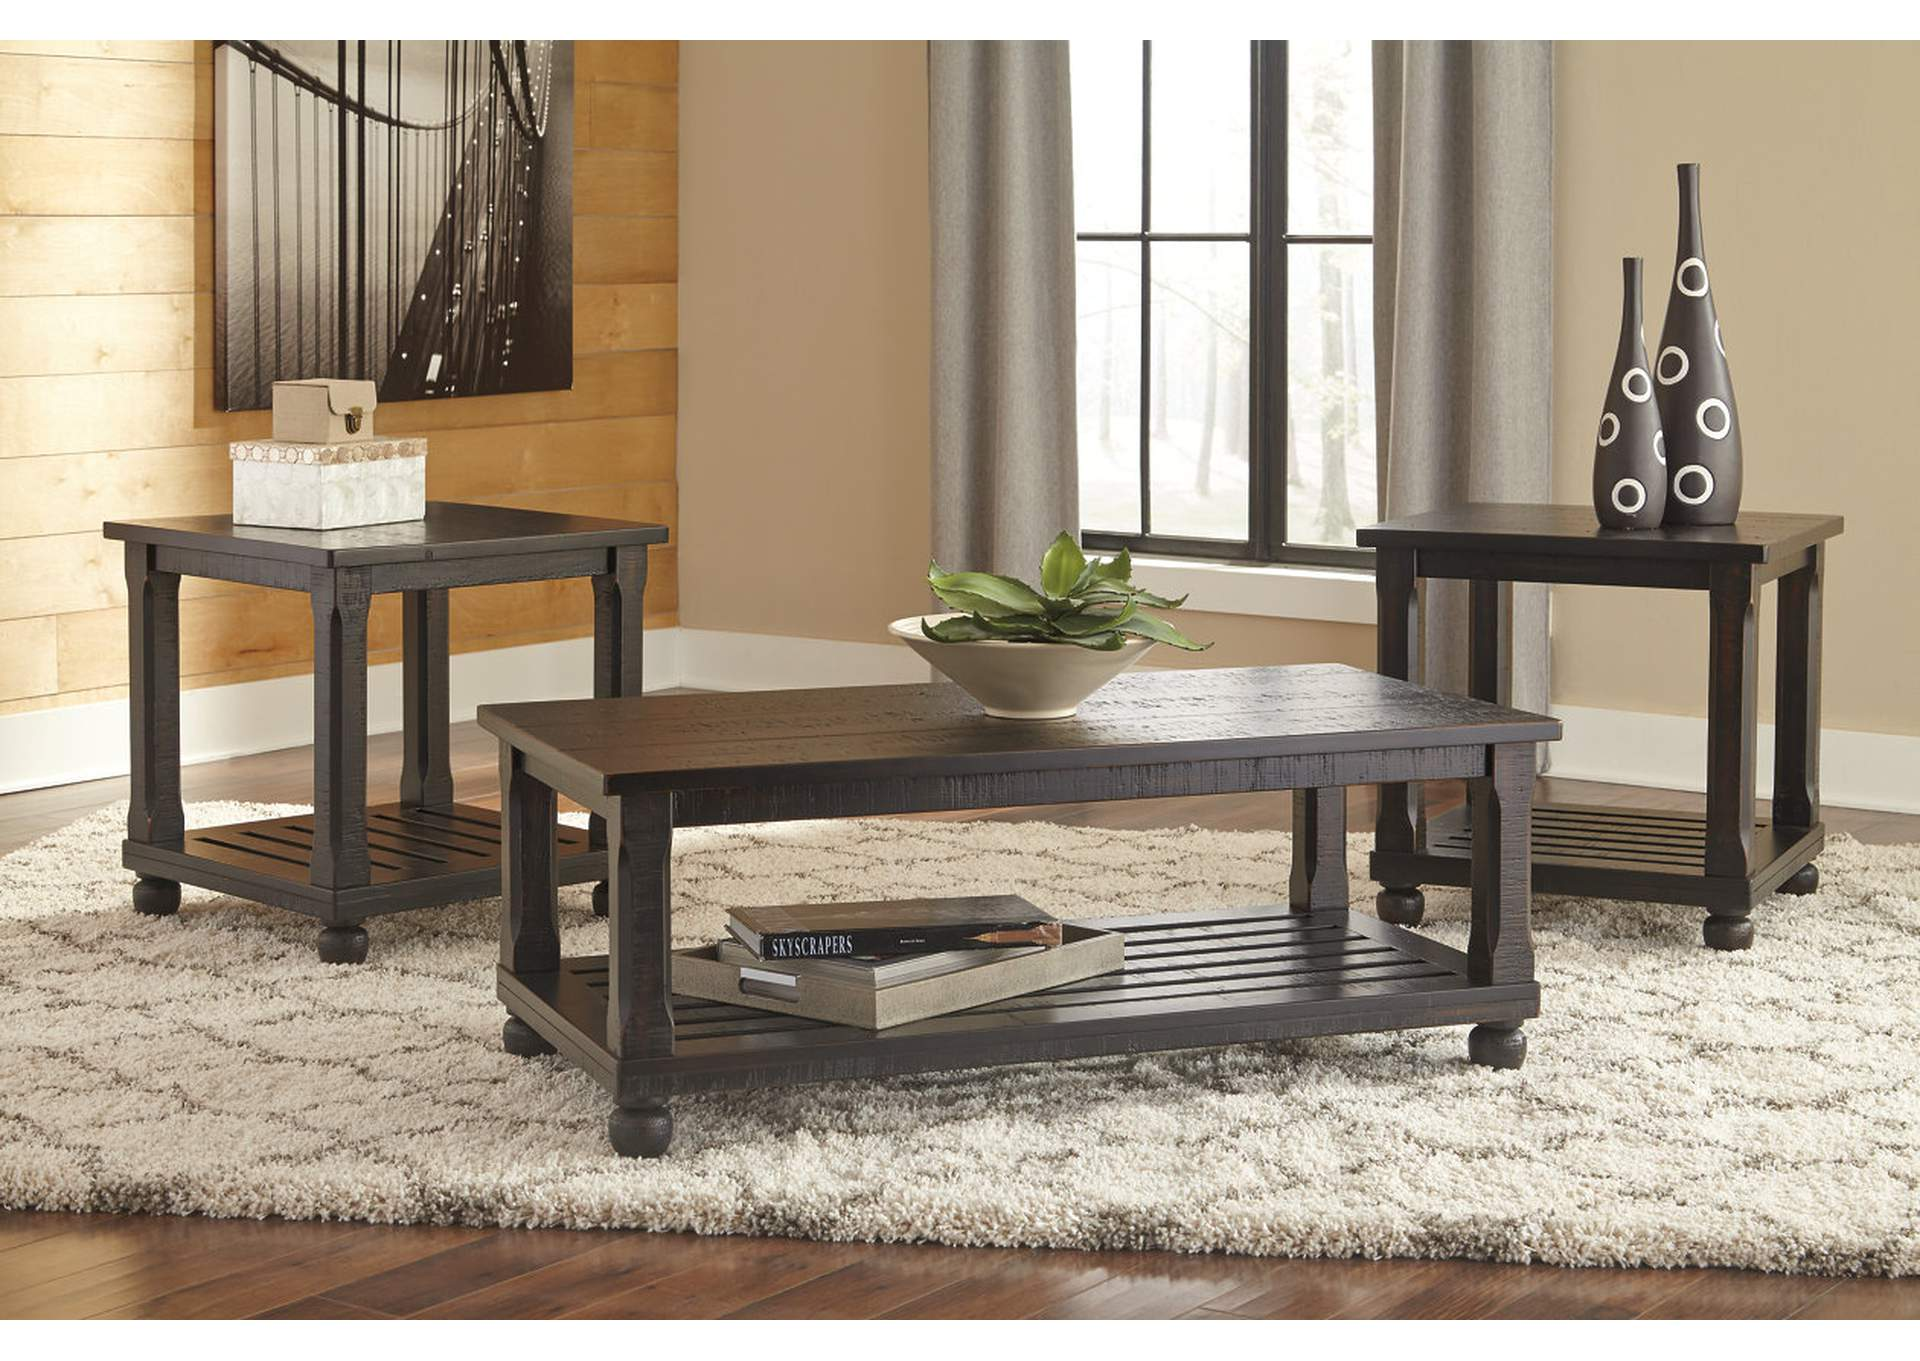 Mallacar Black Occasional Table Set,Signature Design By Ashley